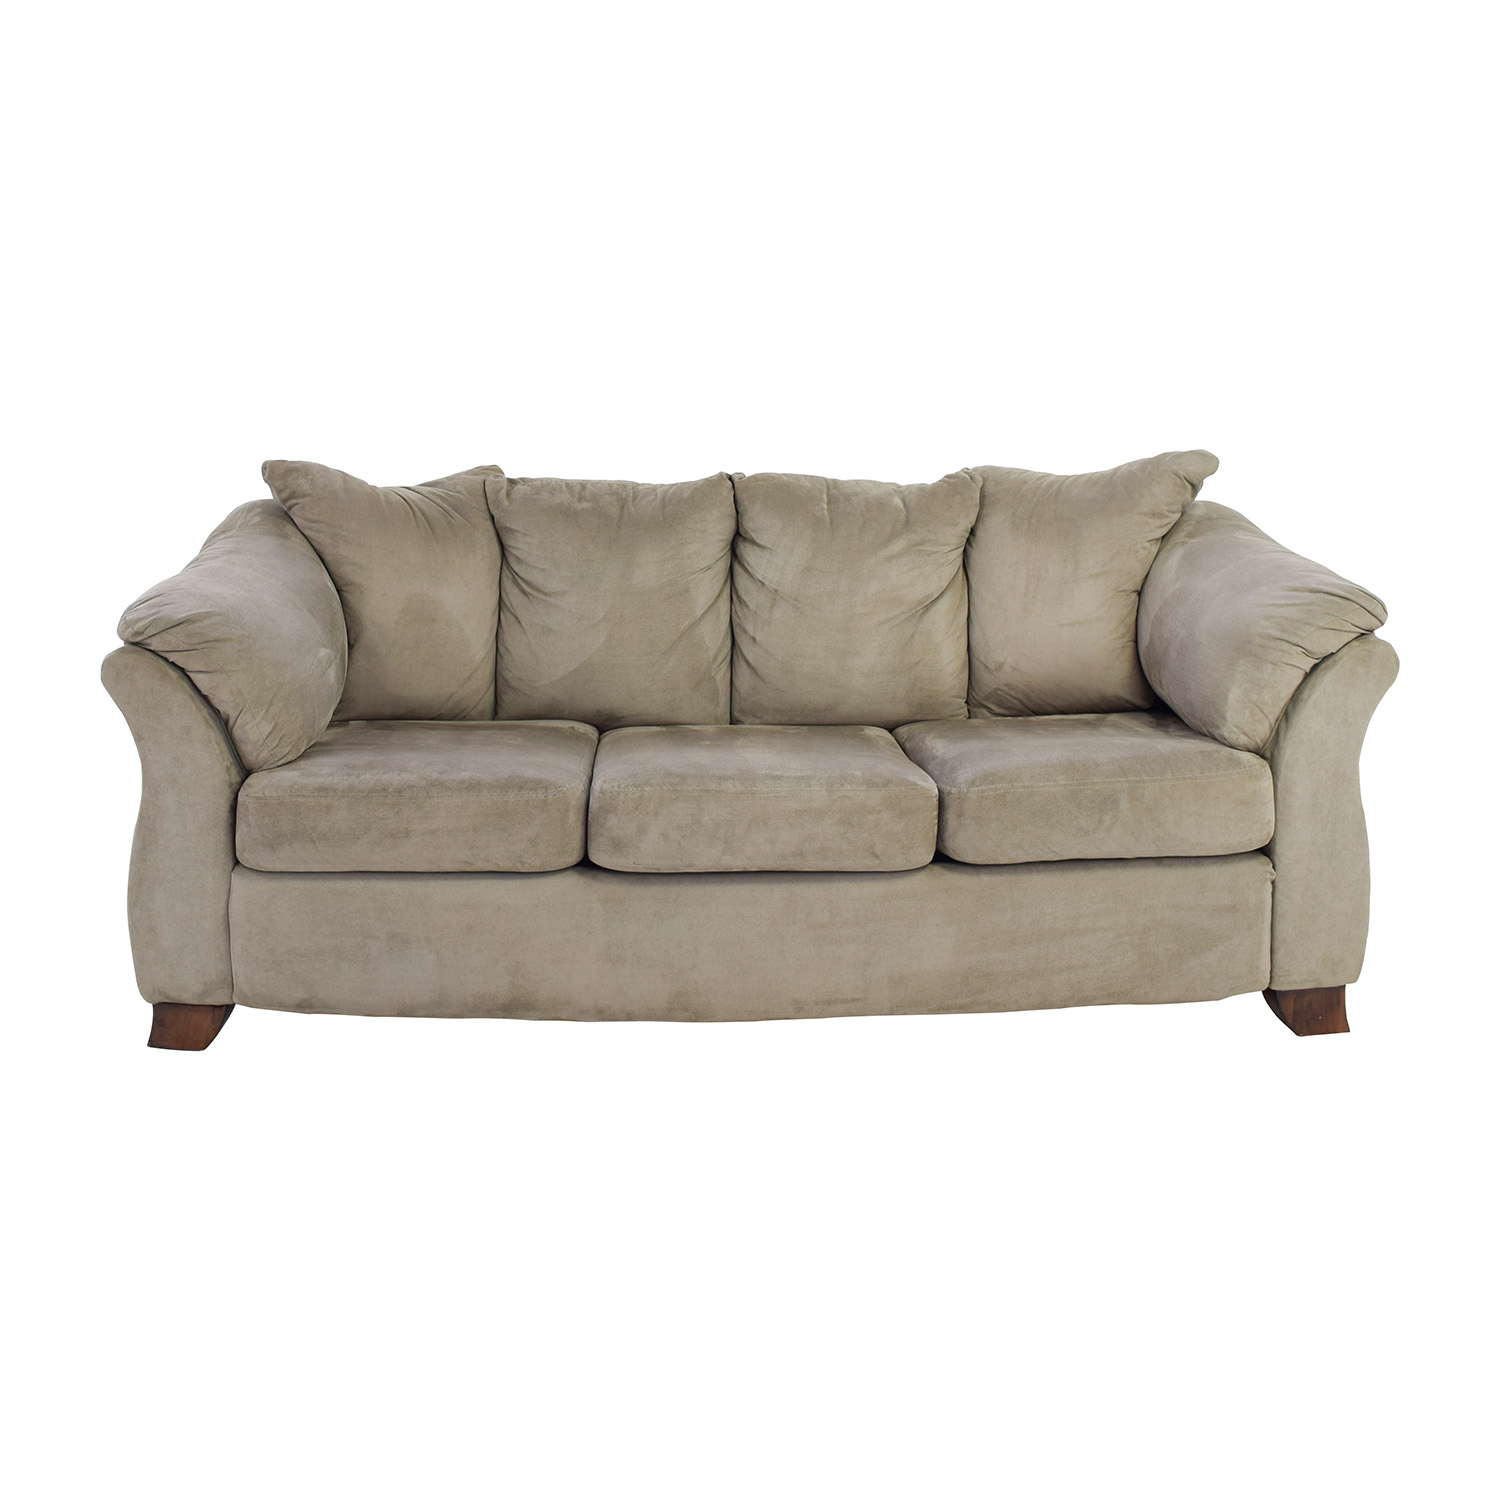 sage green leather sofa sofas rooms to go 50 off west elm with ottoman